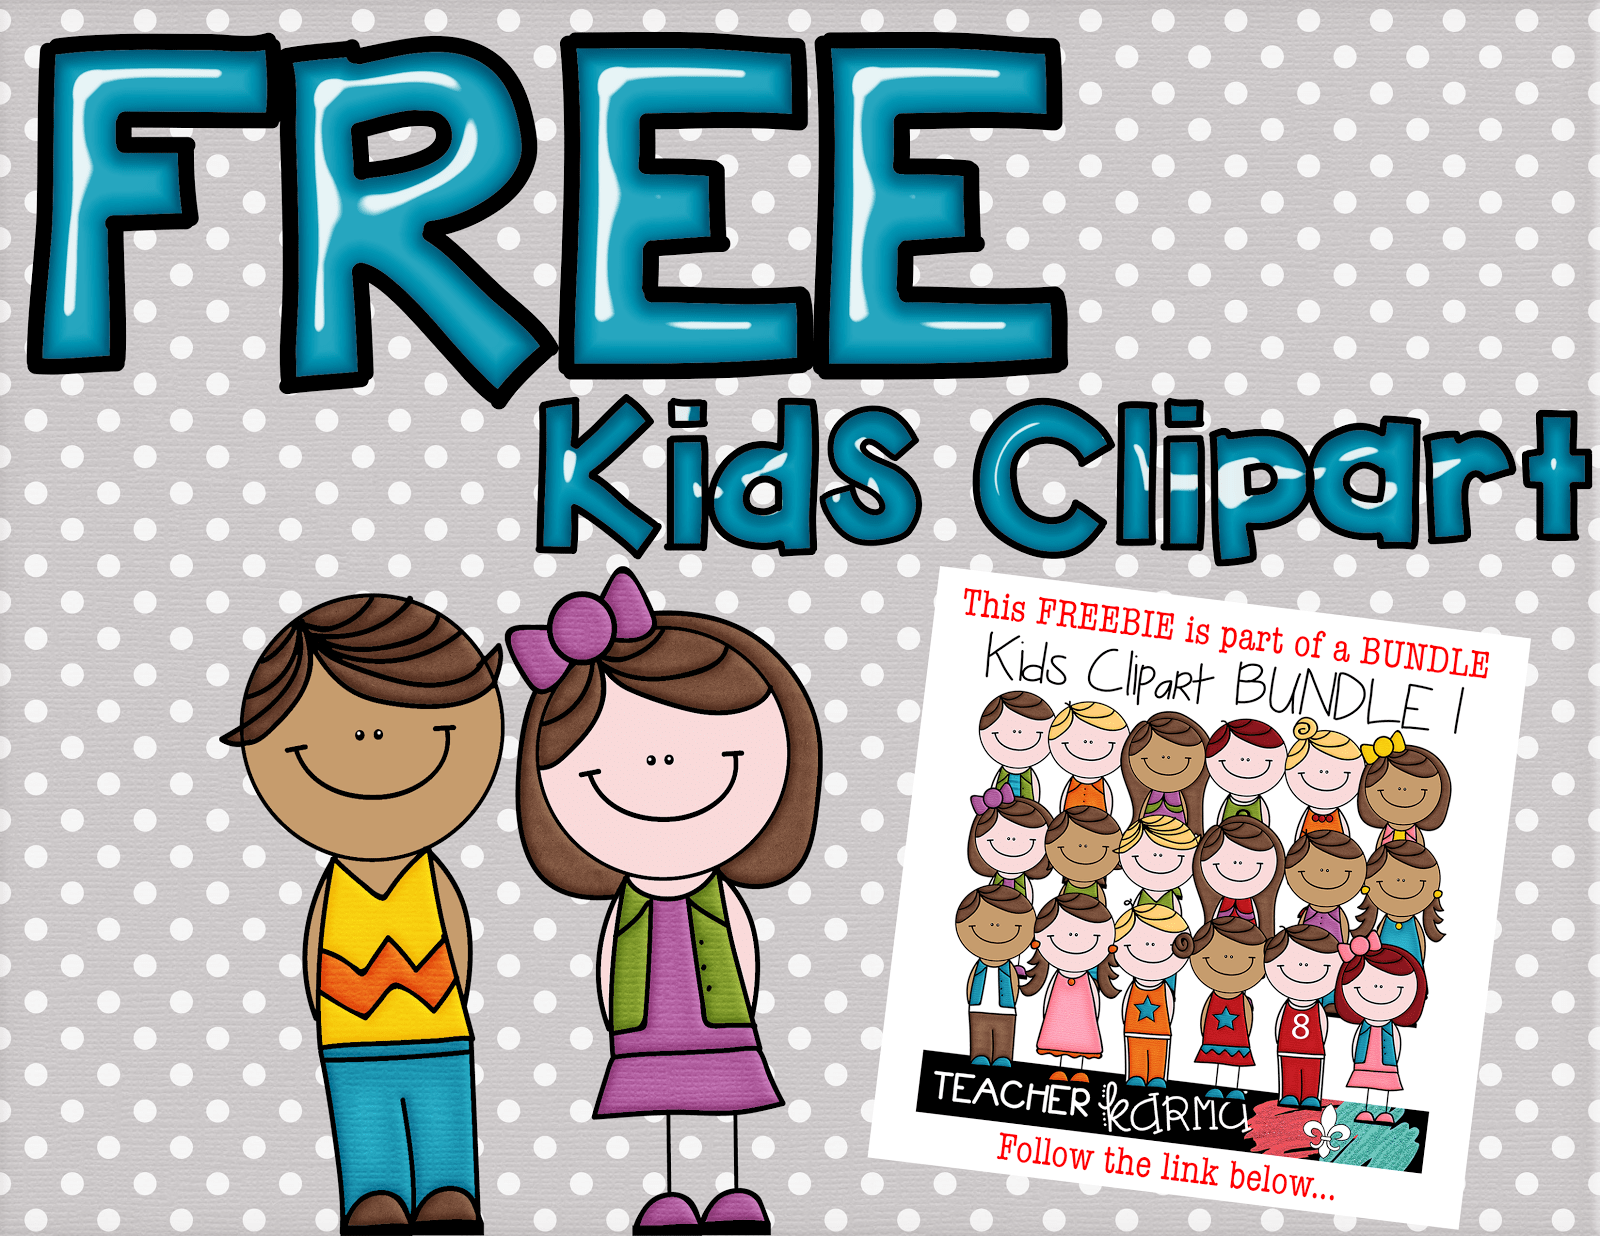 2 FREE Kids: Student Clipart — Teacher KARMA.